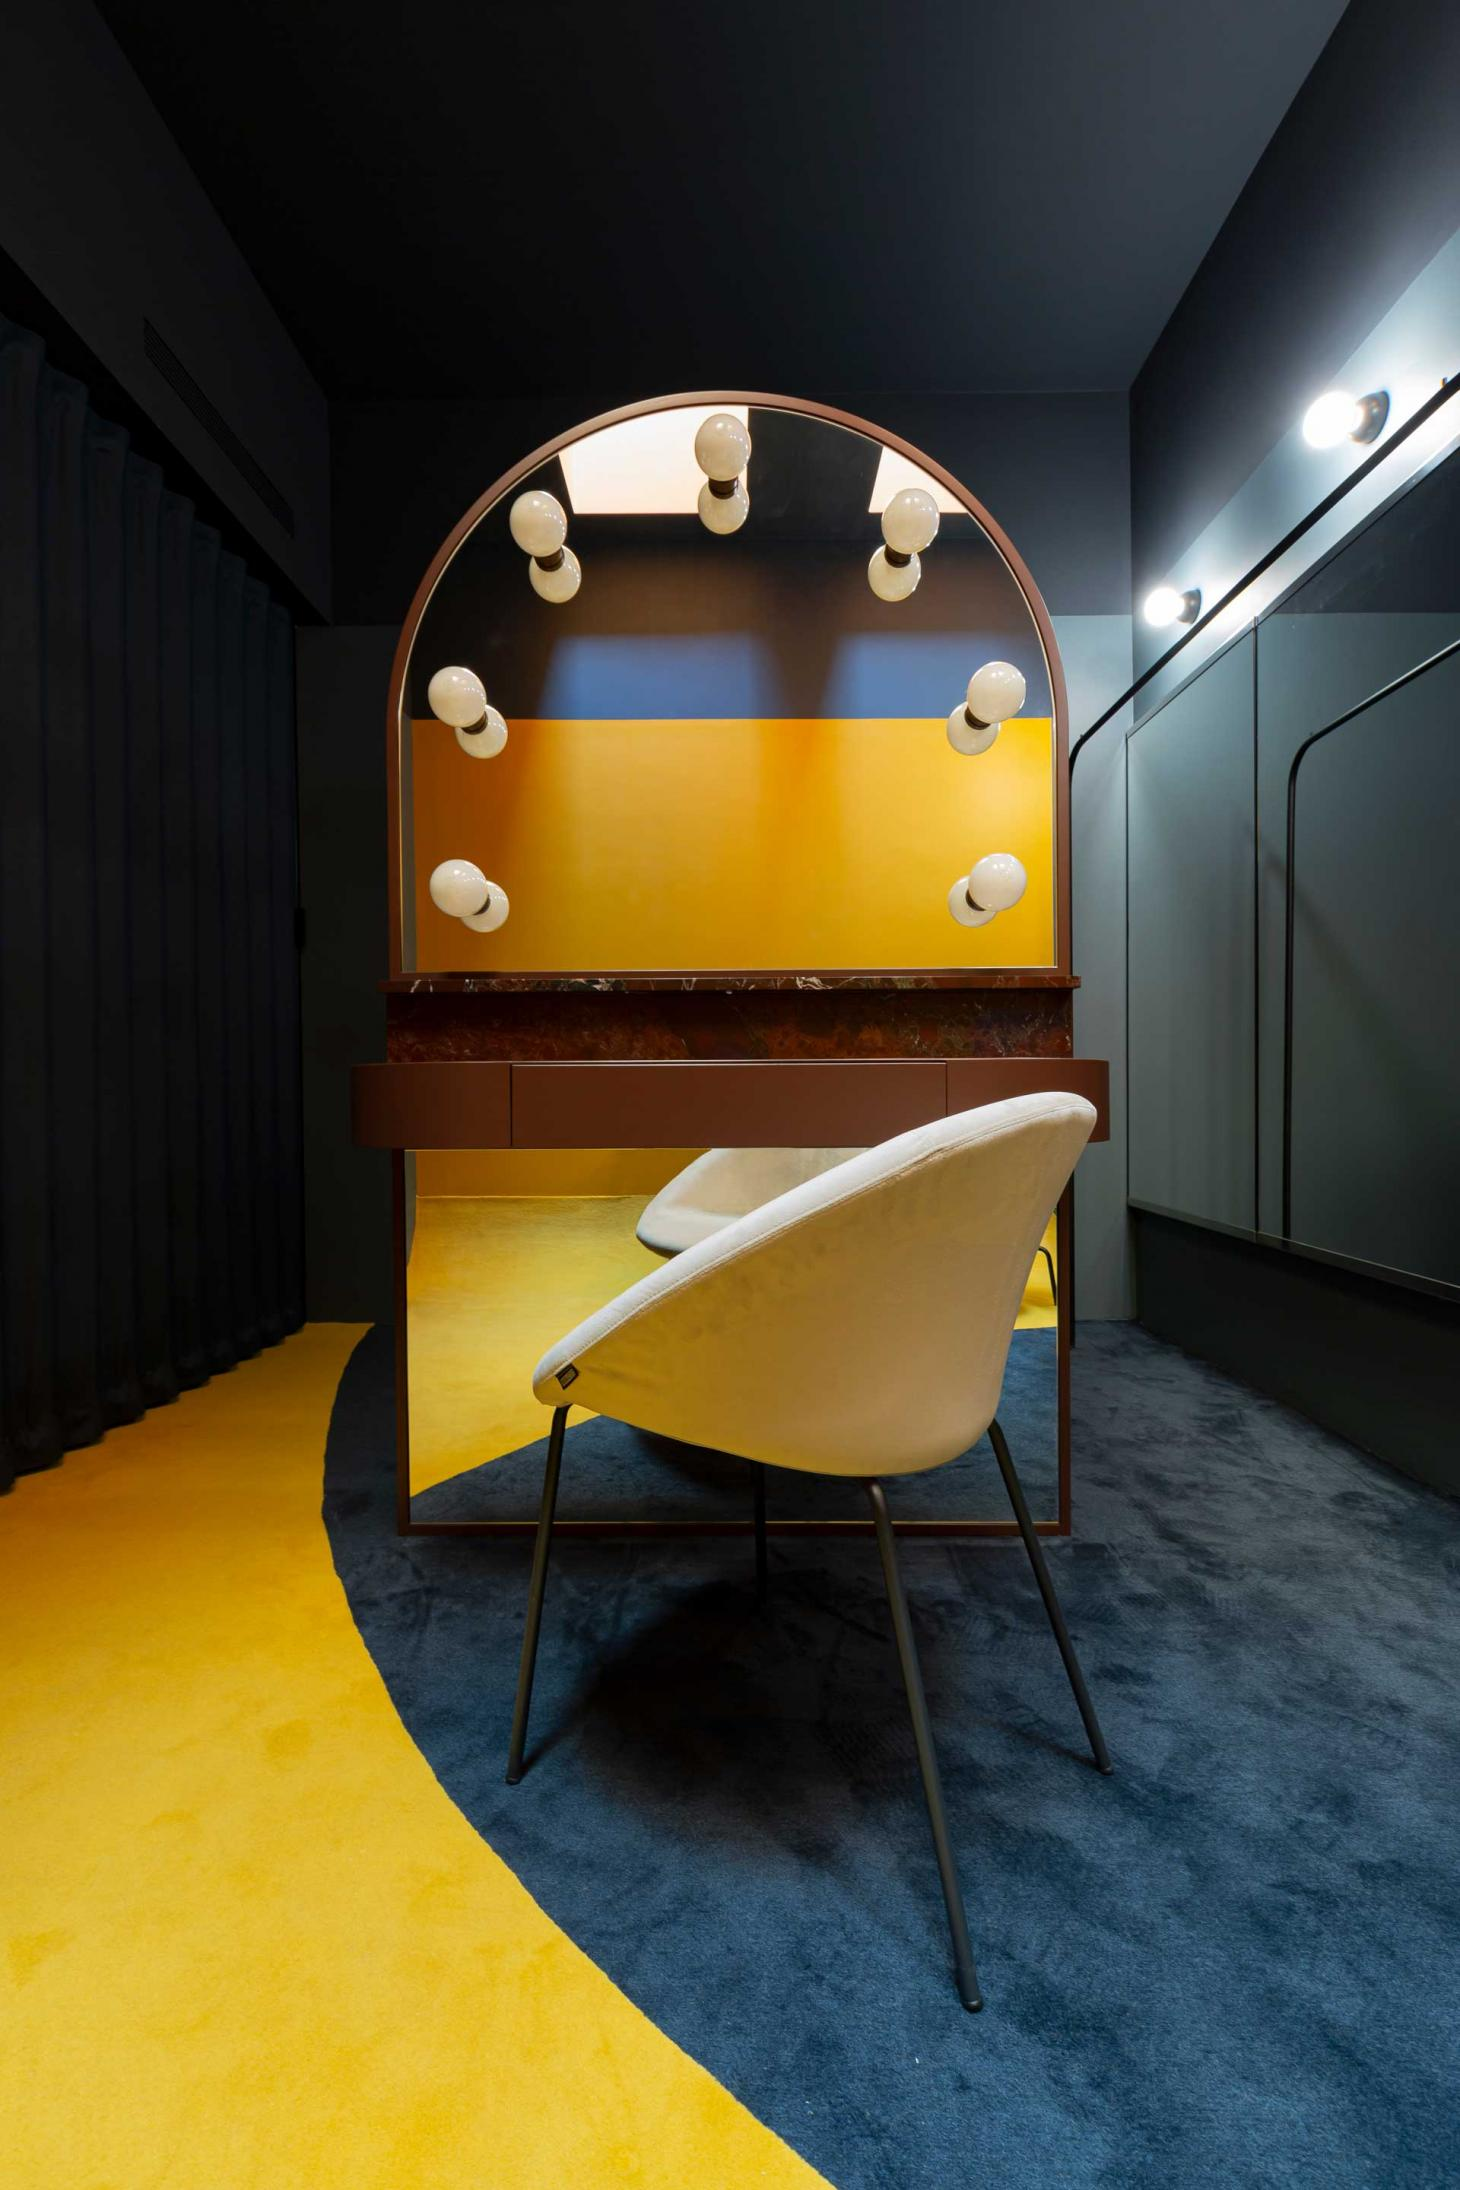 A changing room at Teatro degli Arcimboldi, Milan, featuring a white chair on yellow carpet in front of a mirror